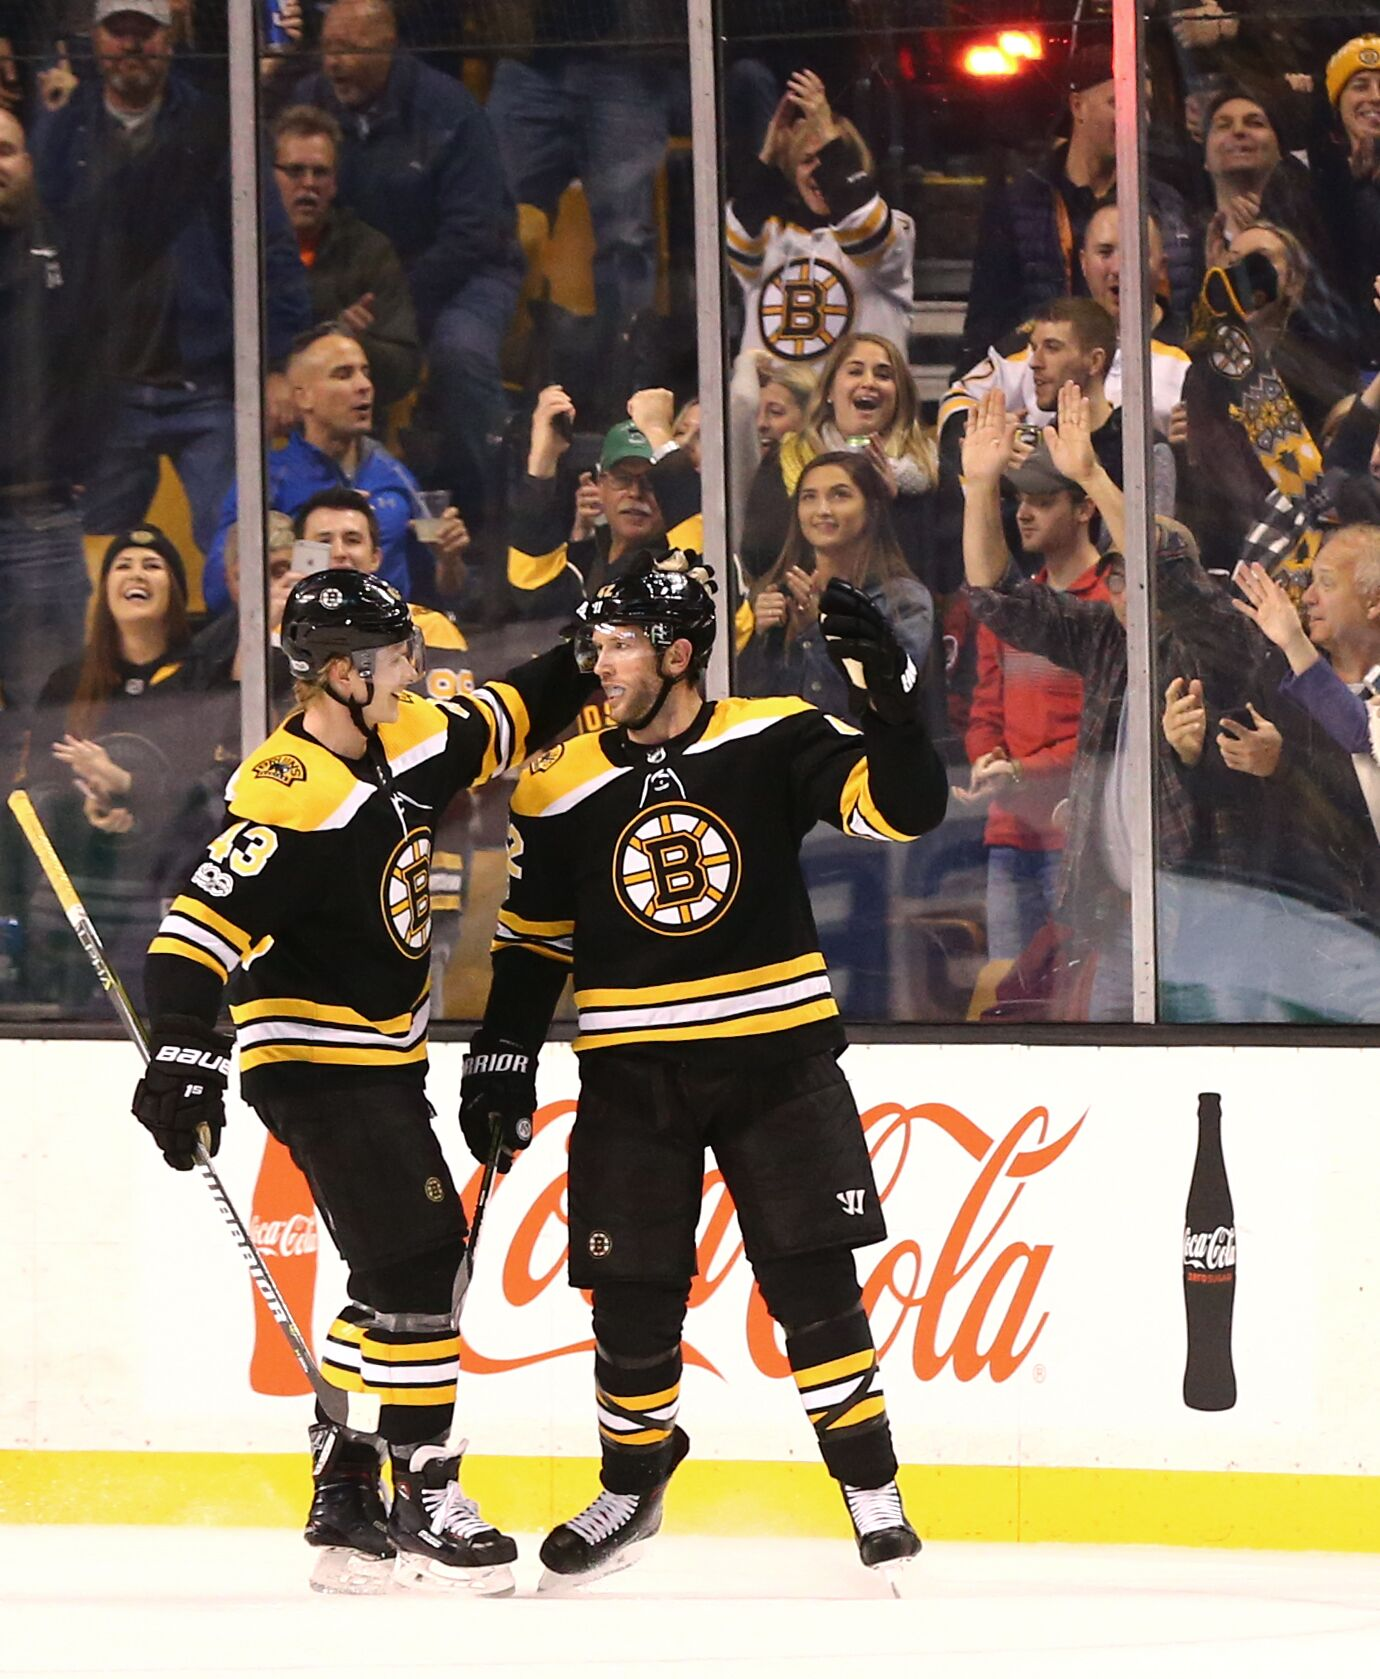 Boston Bruins: David Backes Leads B's To Mammoth 6-1 Victory